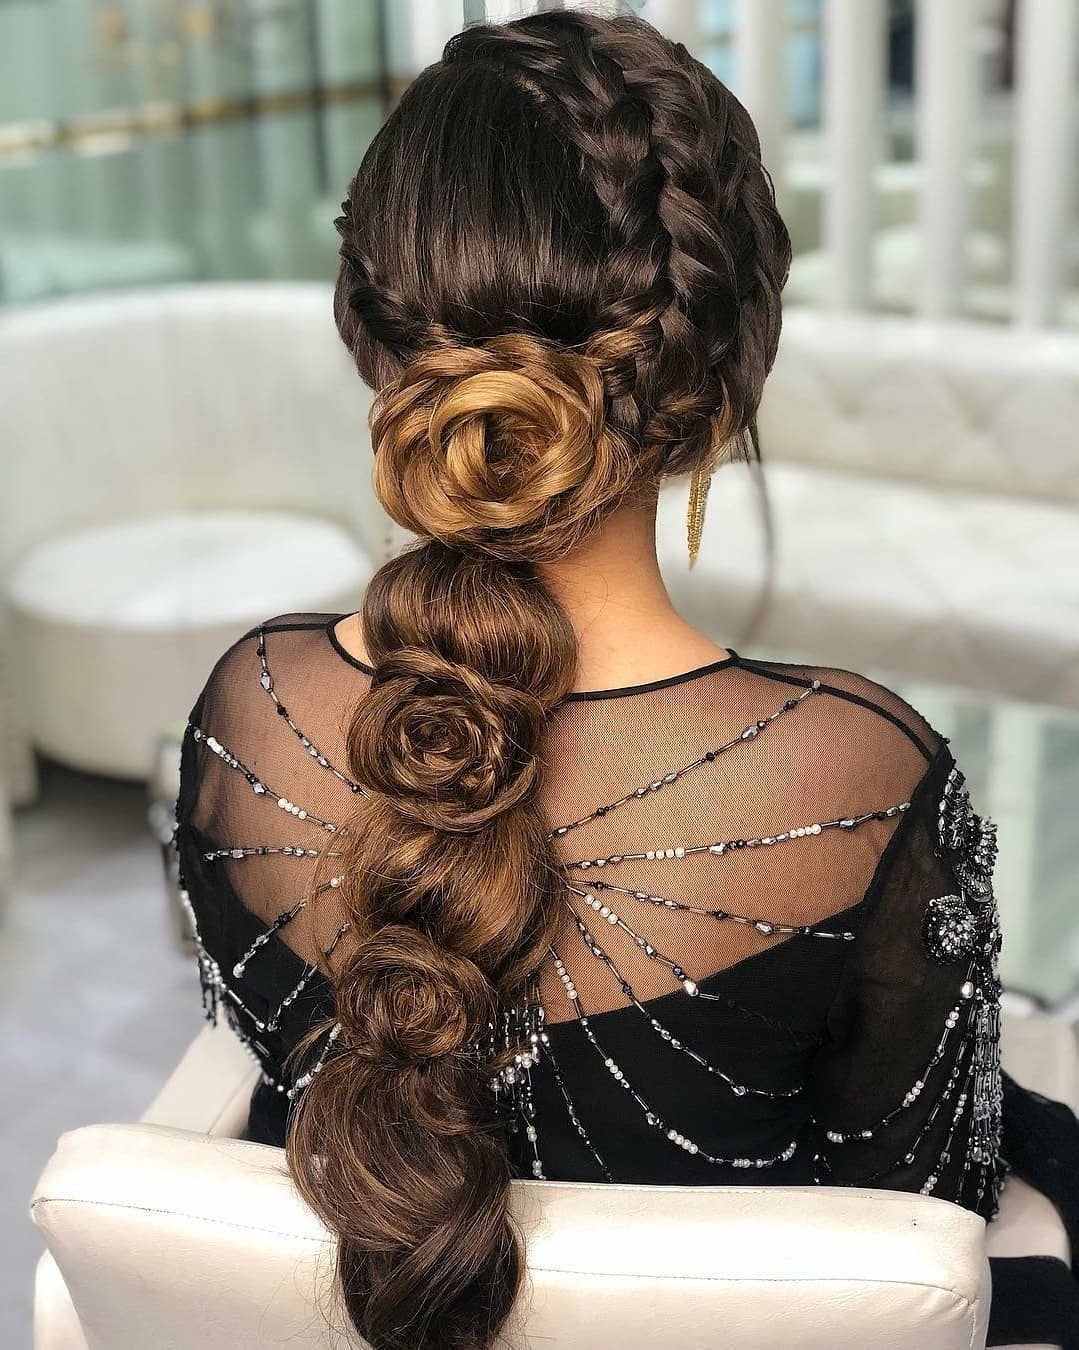 Latest Wedding Hairstyle Inspirations For Your Special Day Indian Bridal Hairstyles Hair Styles Wedding Hairstyles